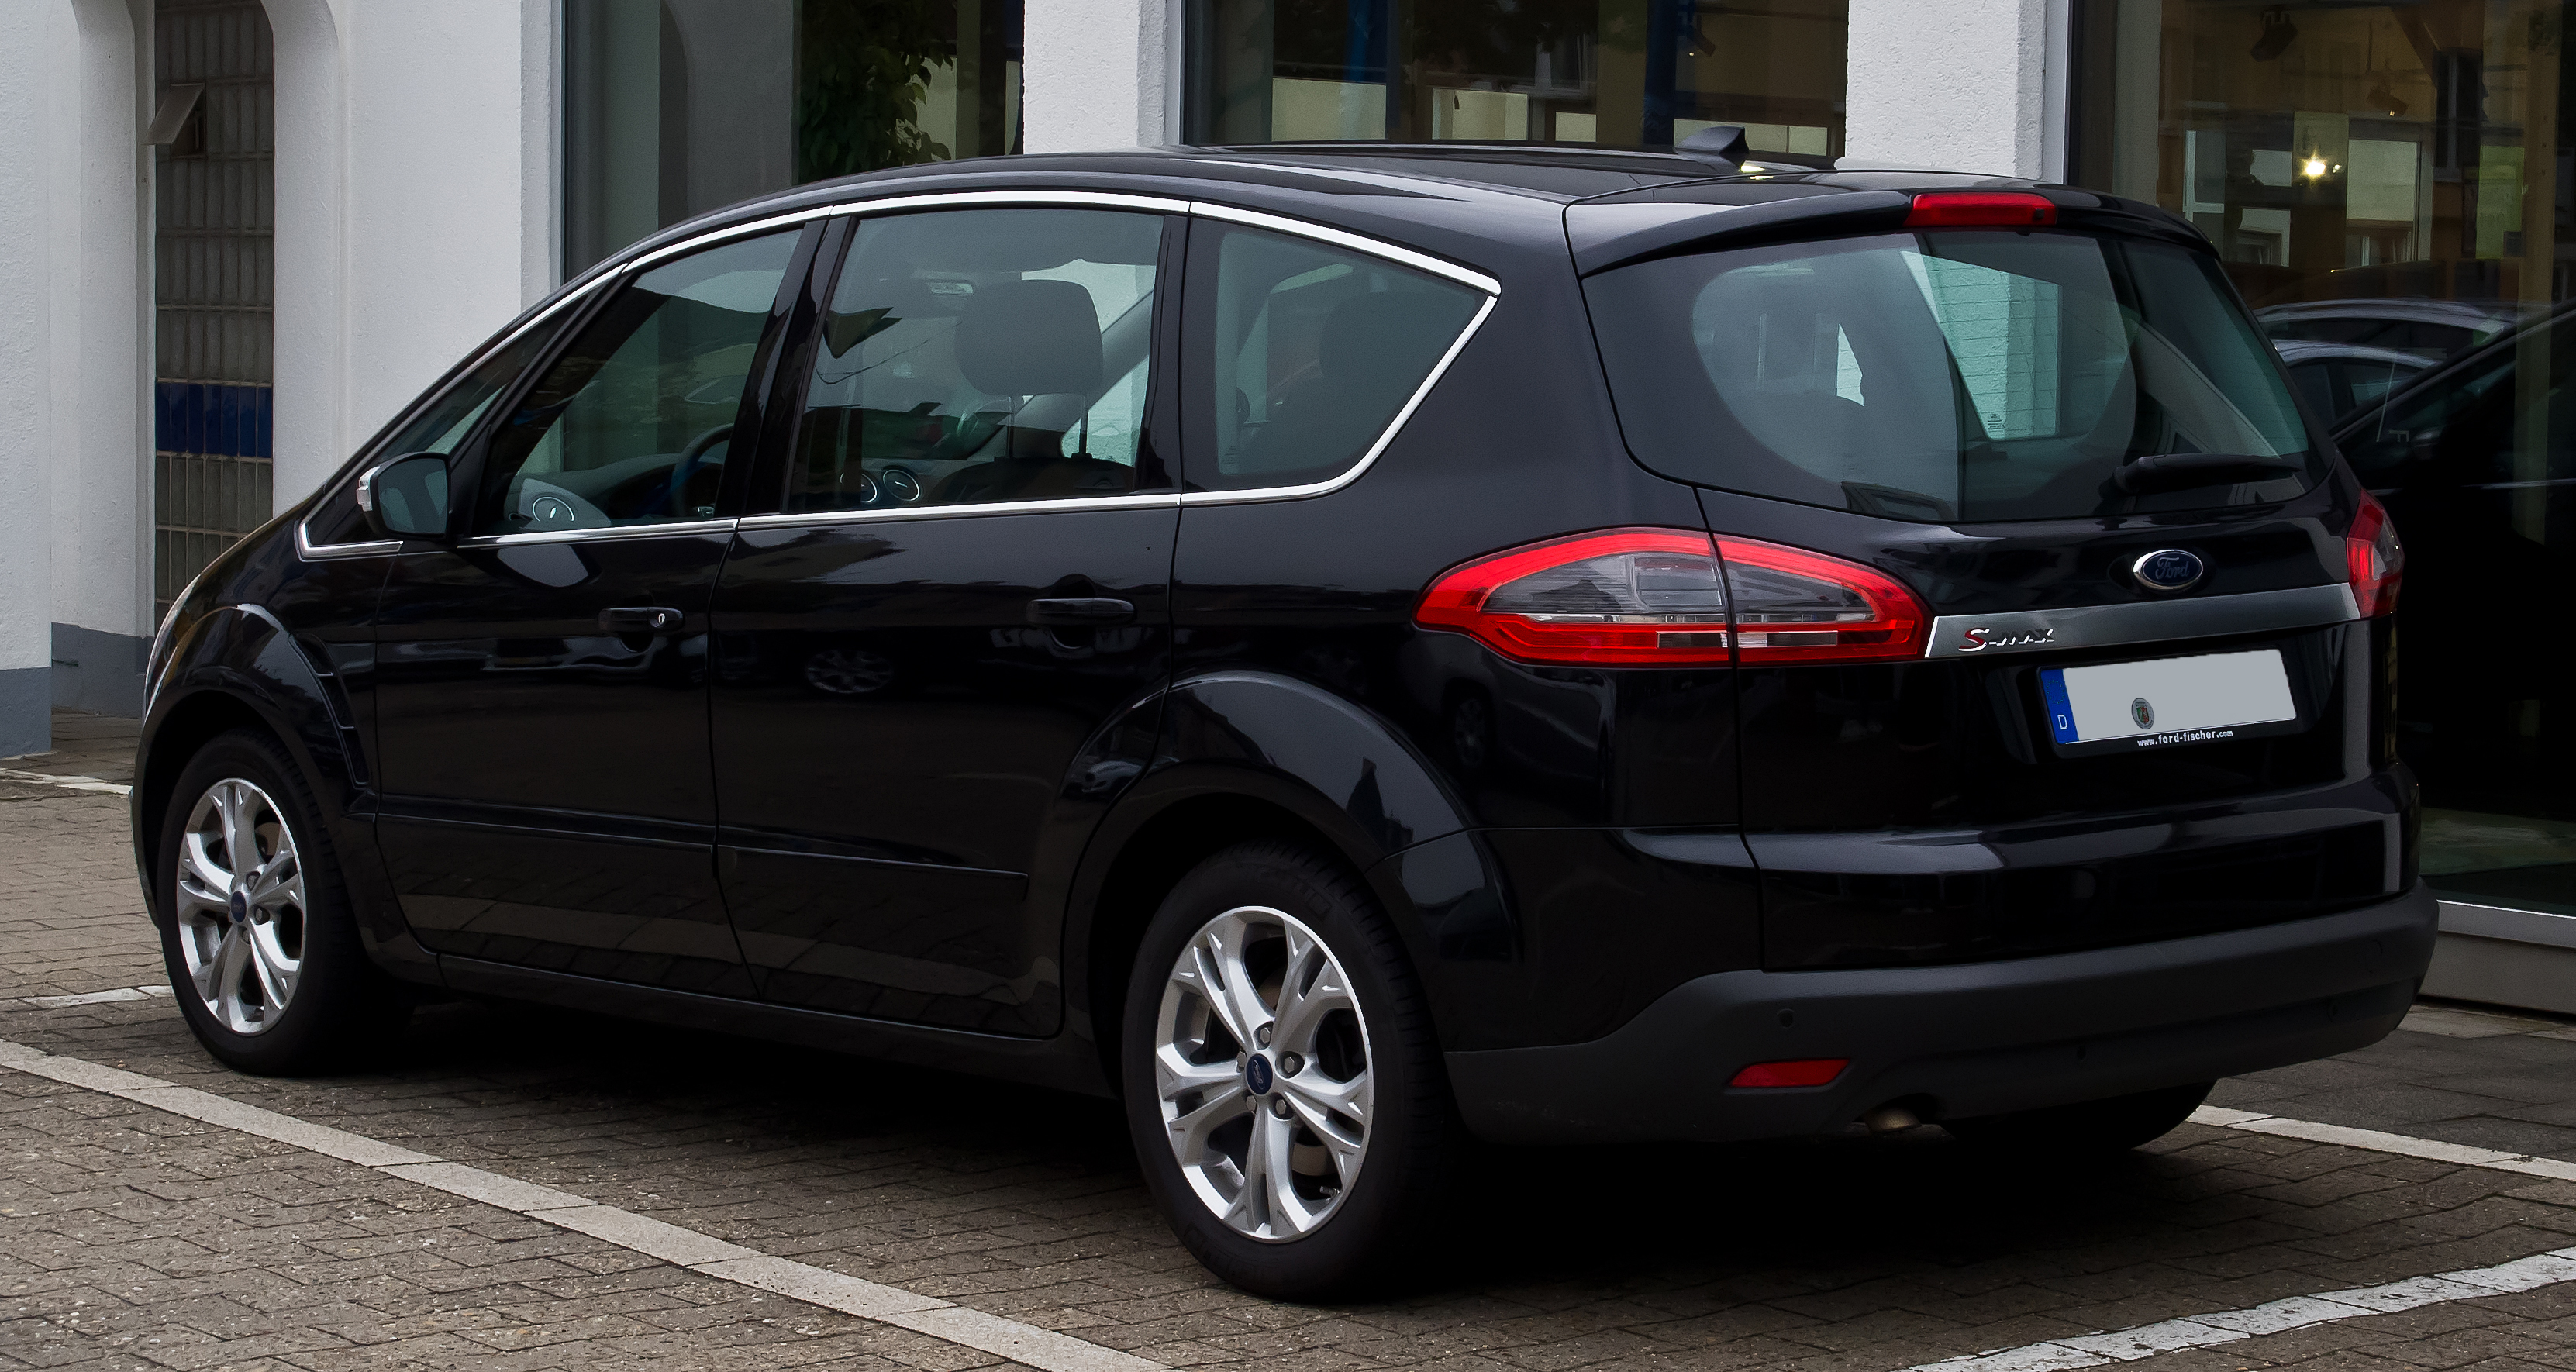 moteur de recherche sukoga image ford s max. Black Bedroom Furniture Sets. Home Design Ideas